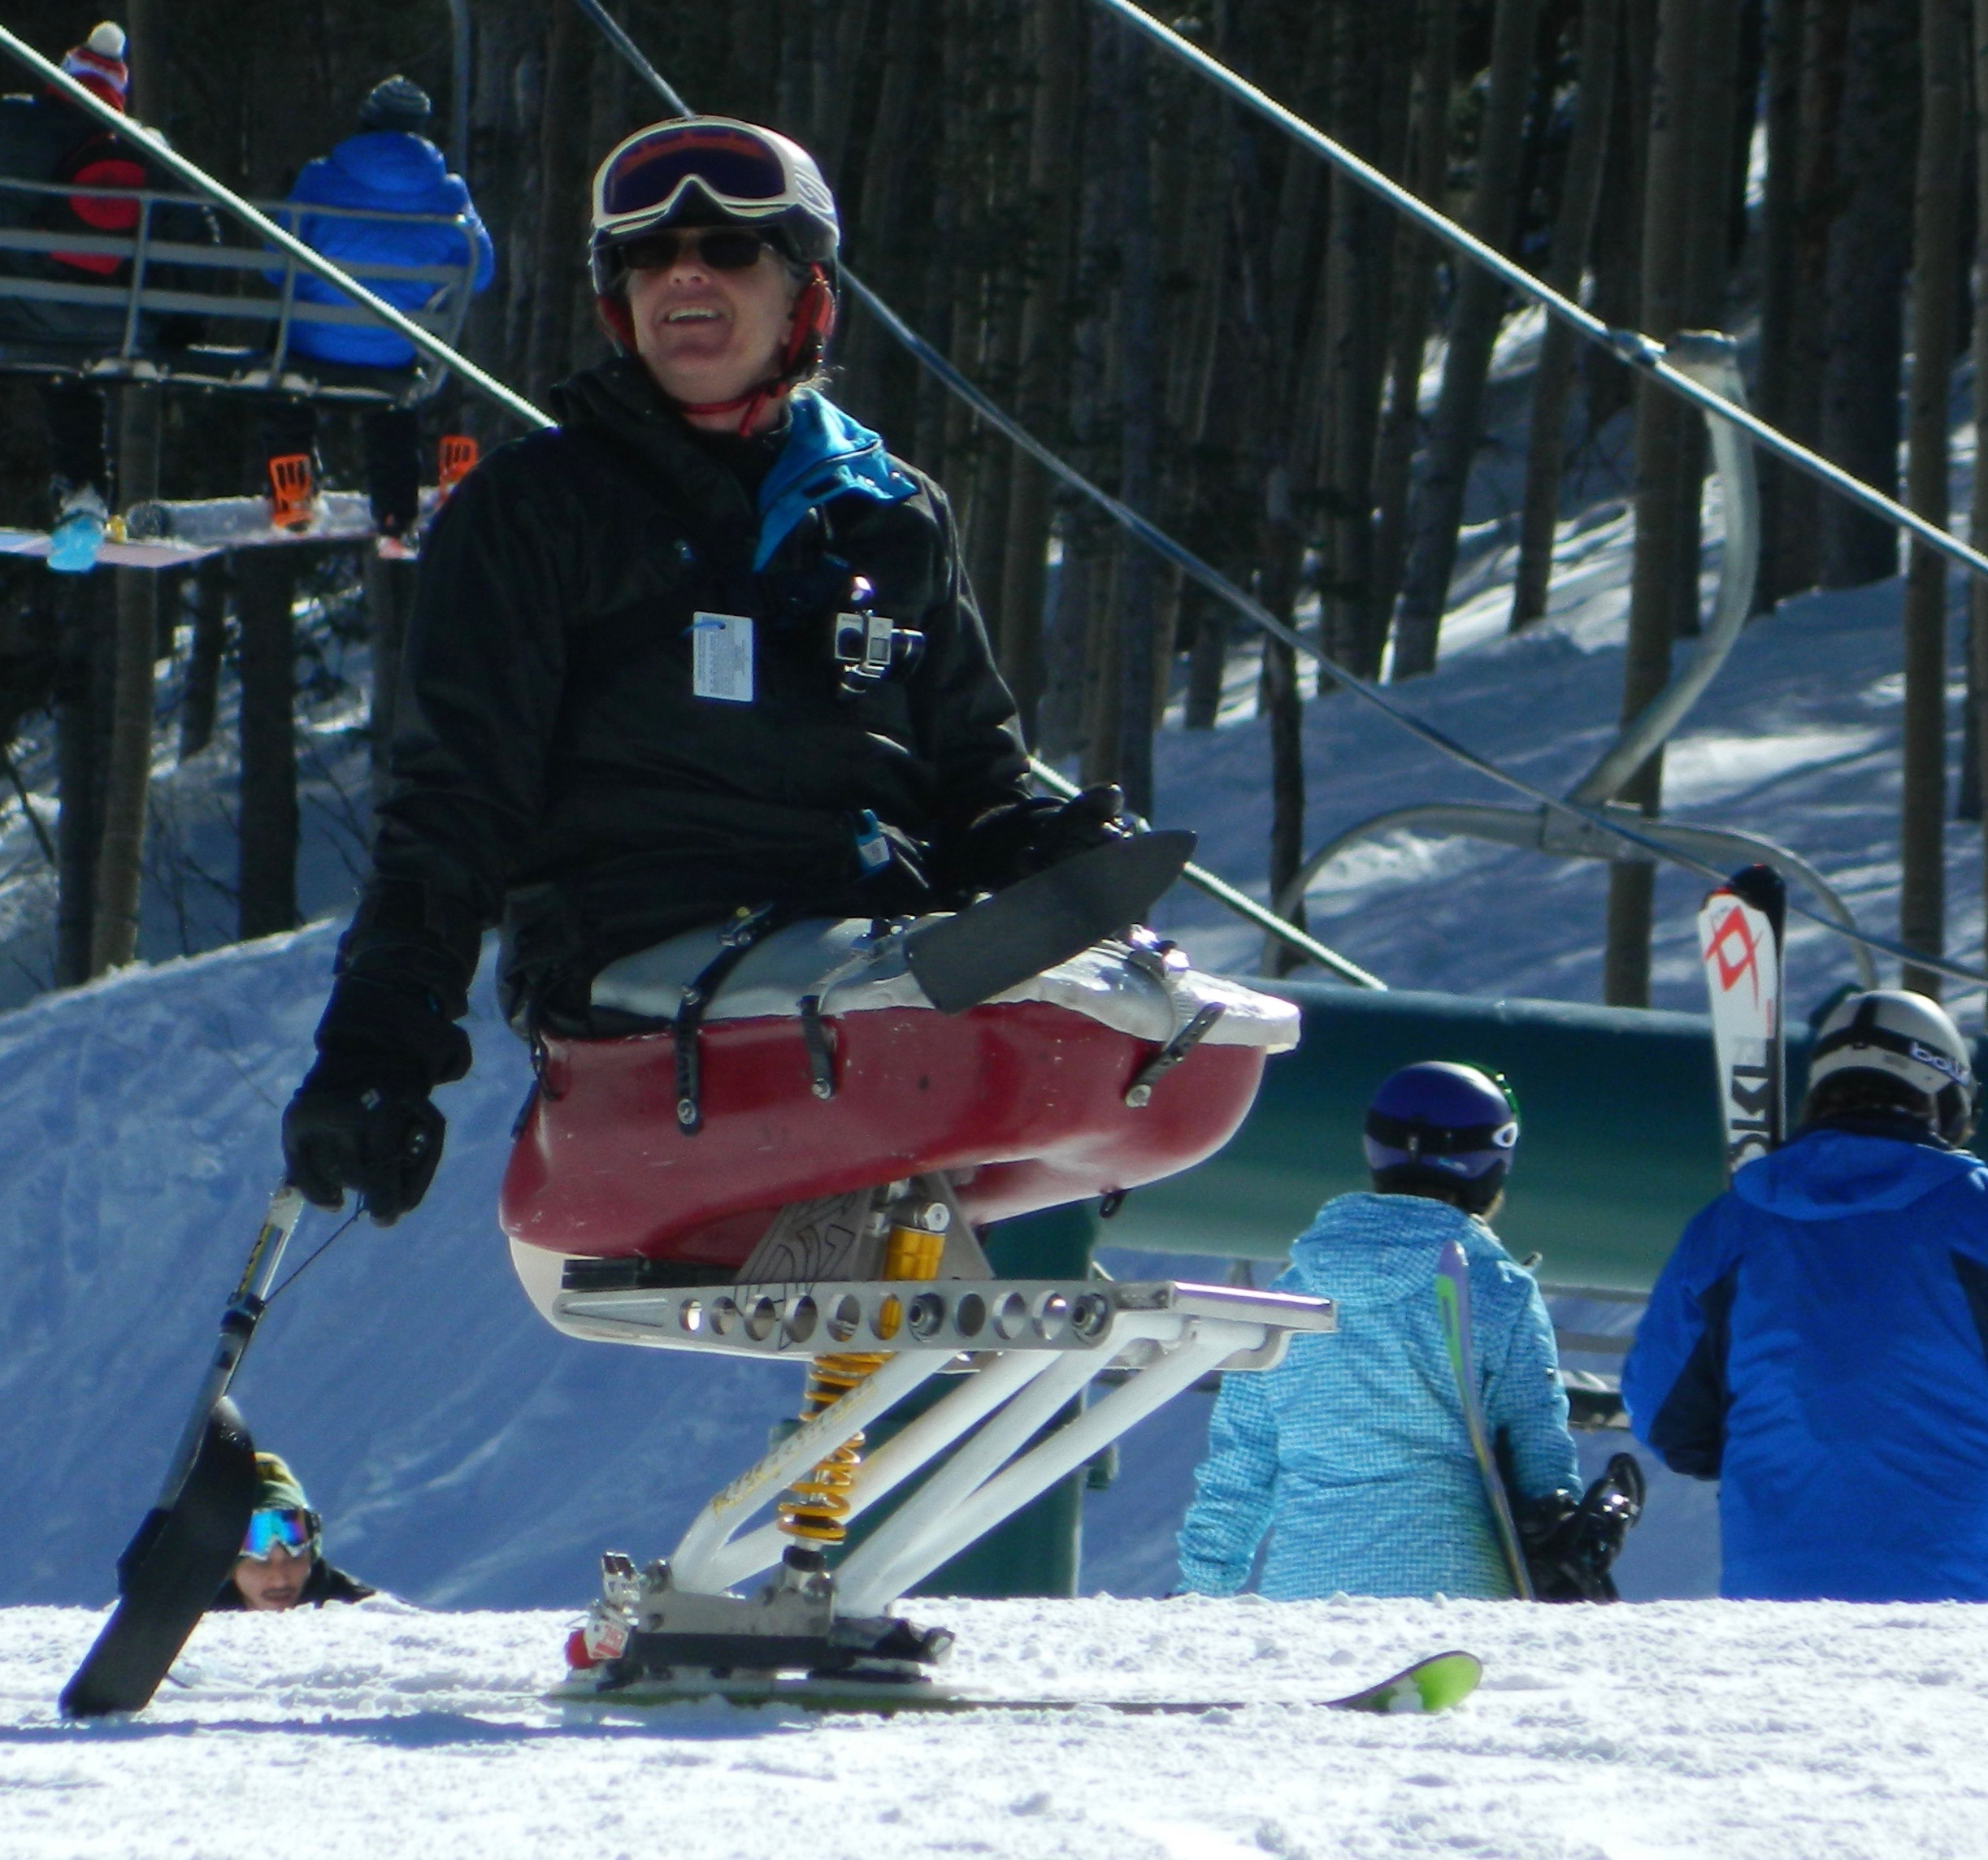 Cheerful disabled skier in red ski chair at Taos Ski Valley. Skiers, chairlift, and wintry forest in the background.